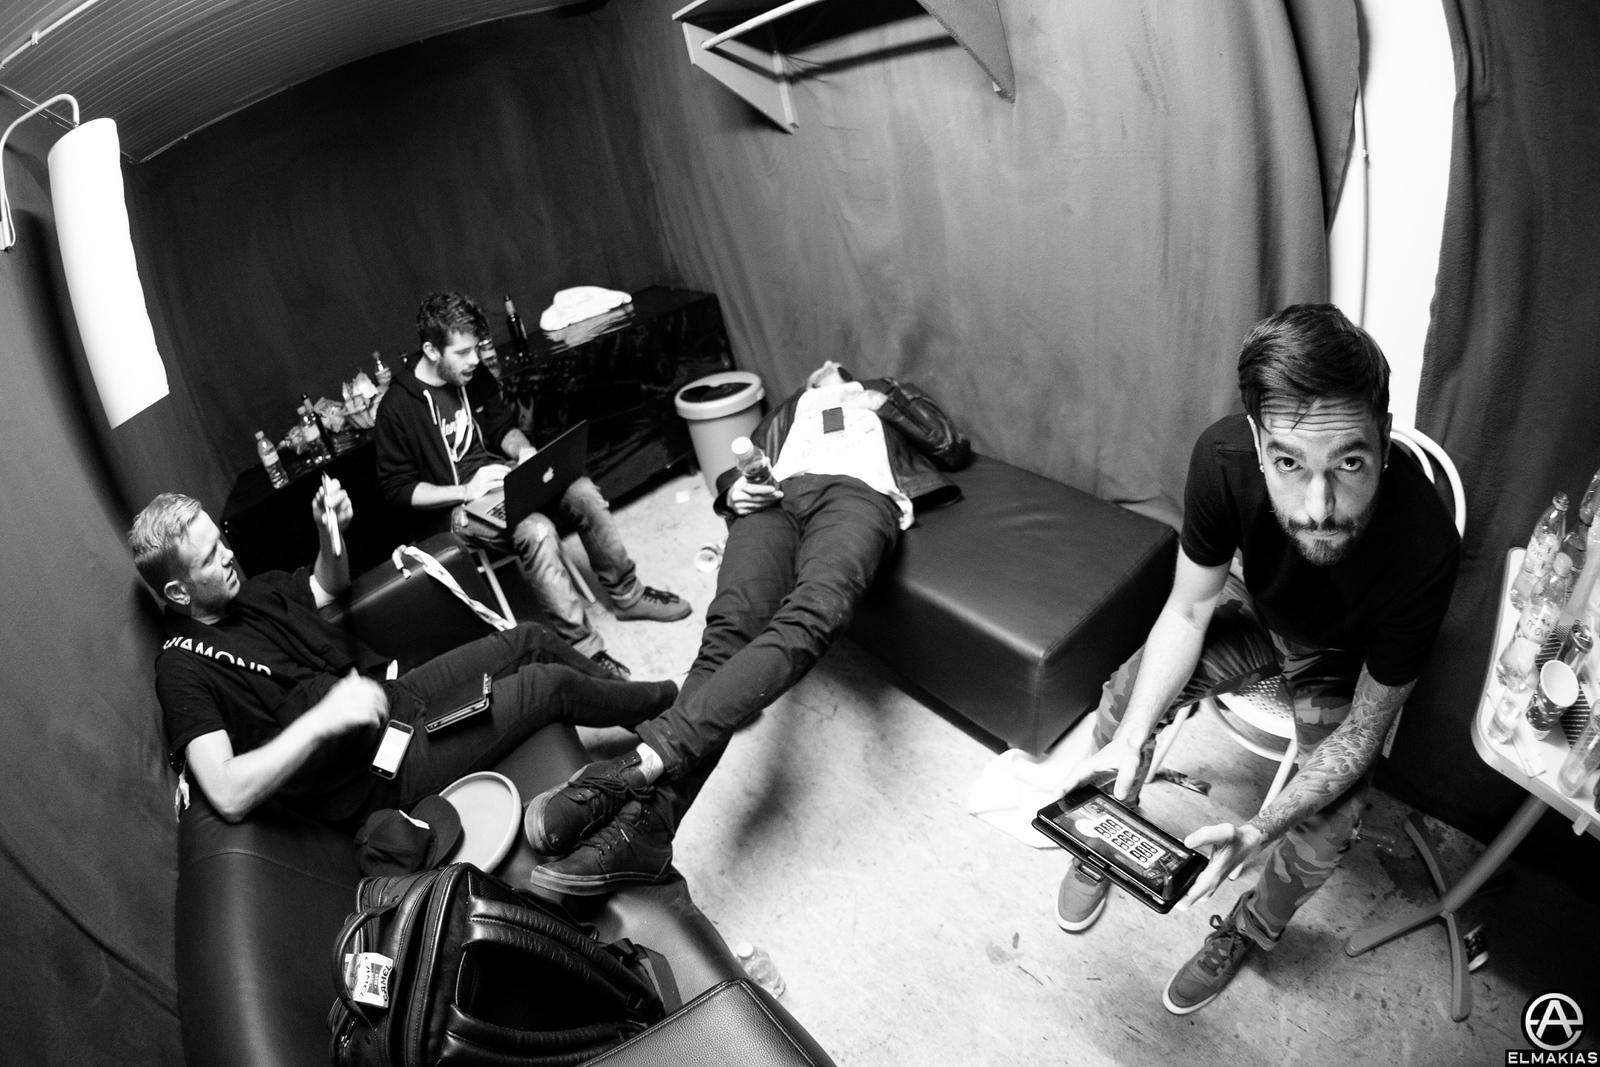 backstage hanging in Switzerland